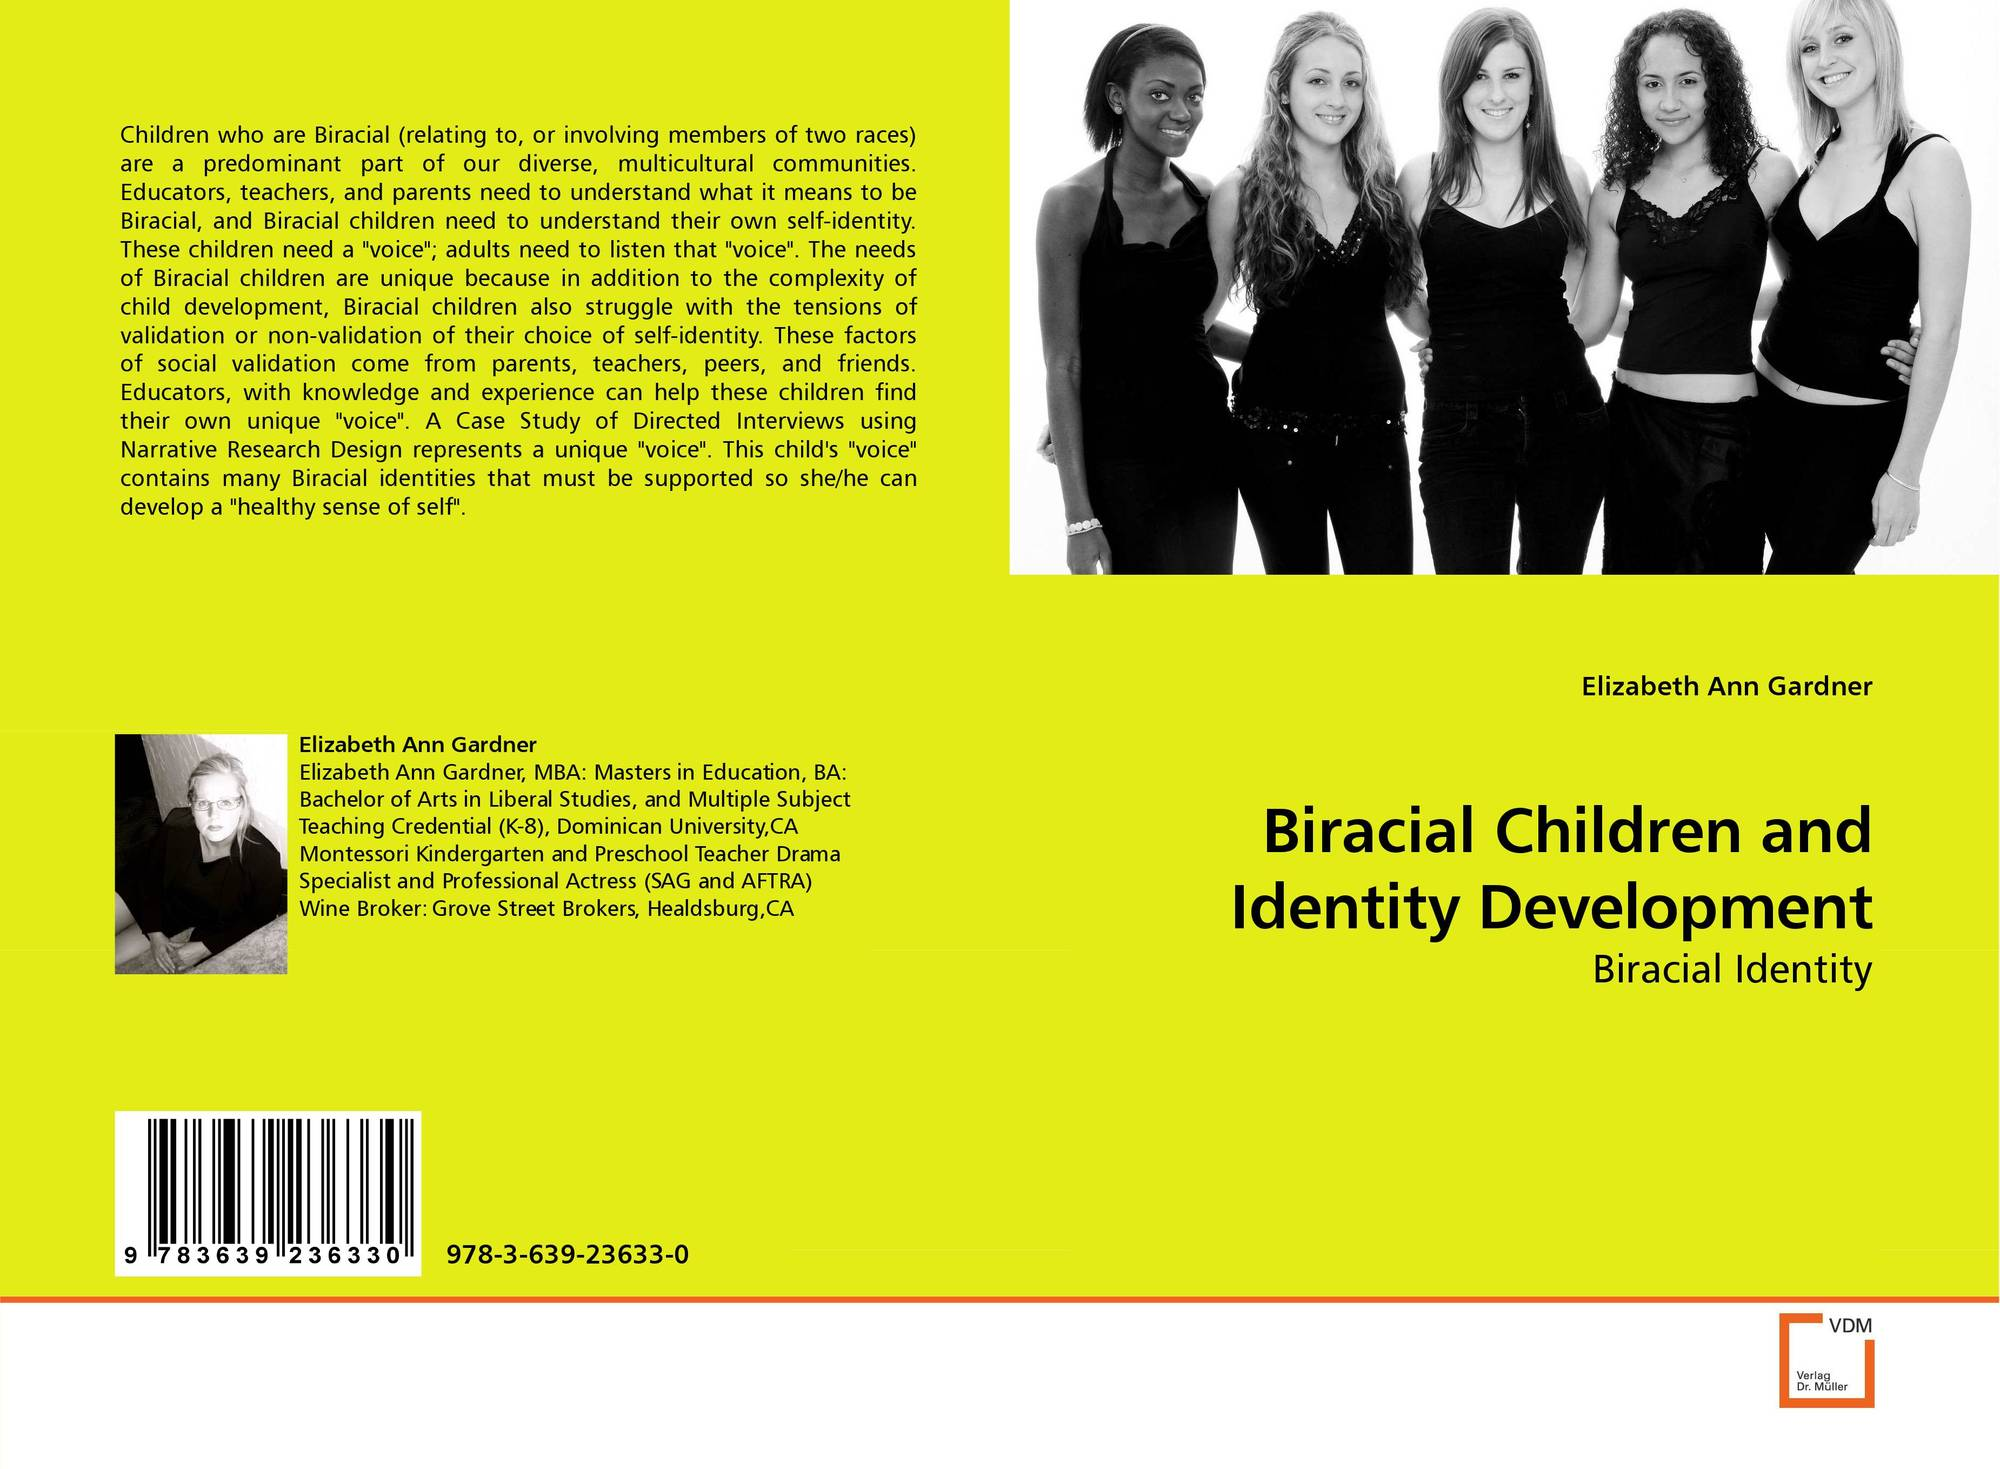 identity and belonging of interracial children The multiplicity of belonging: pushing identity research beyond binary thinking sarah e gaither  the multiplicity of belonging: pushing identity research beyond the binary  exist between biracial and monoracial children adult biracial identity, behavior, and language.